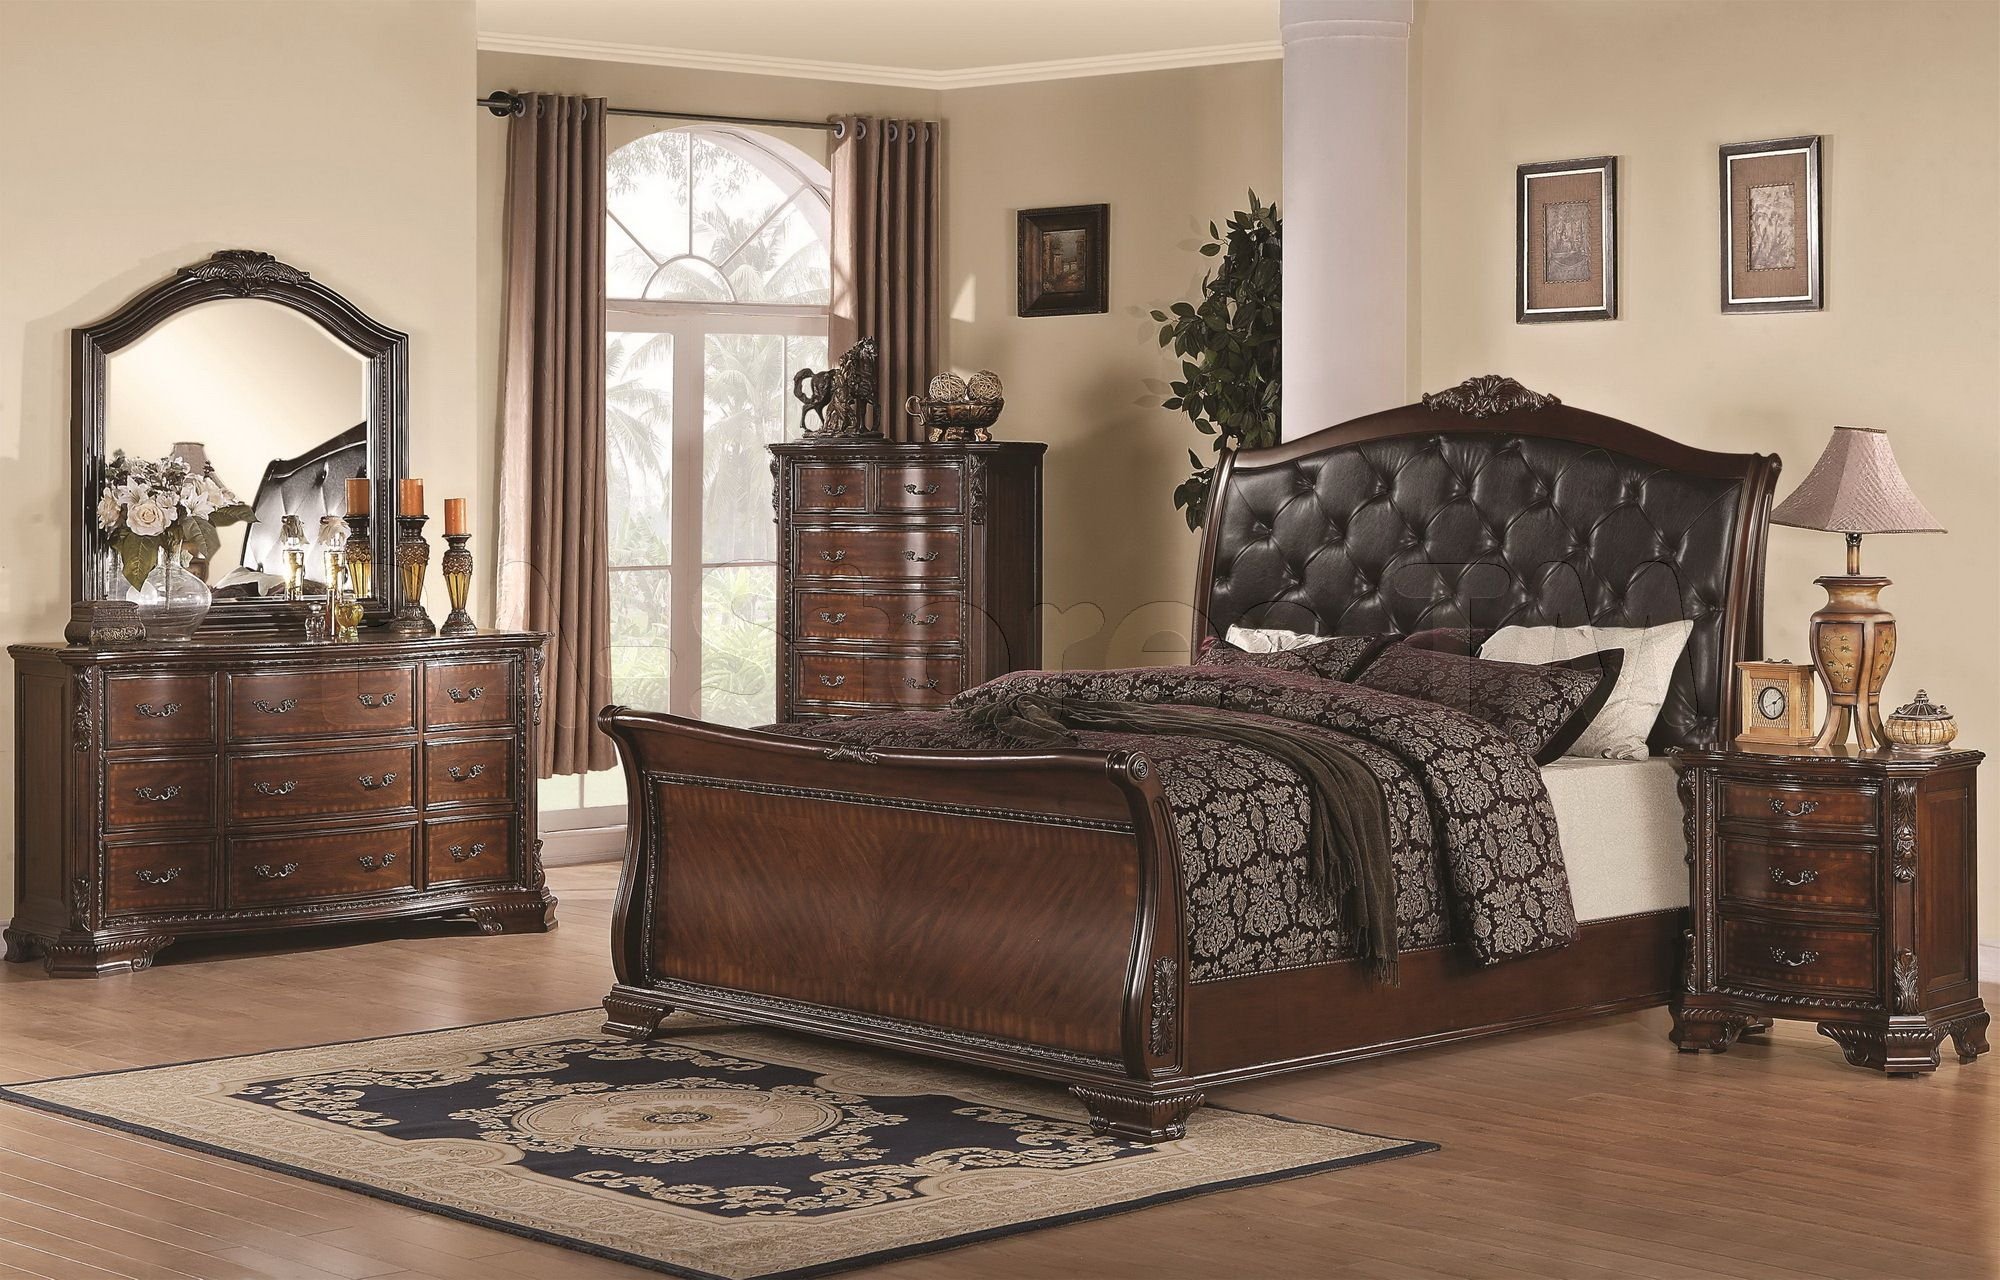 The most expensive one bedroom with full size platform bed headboard